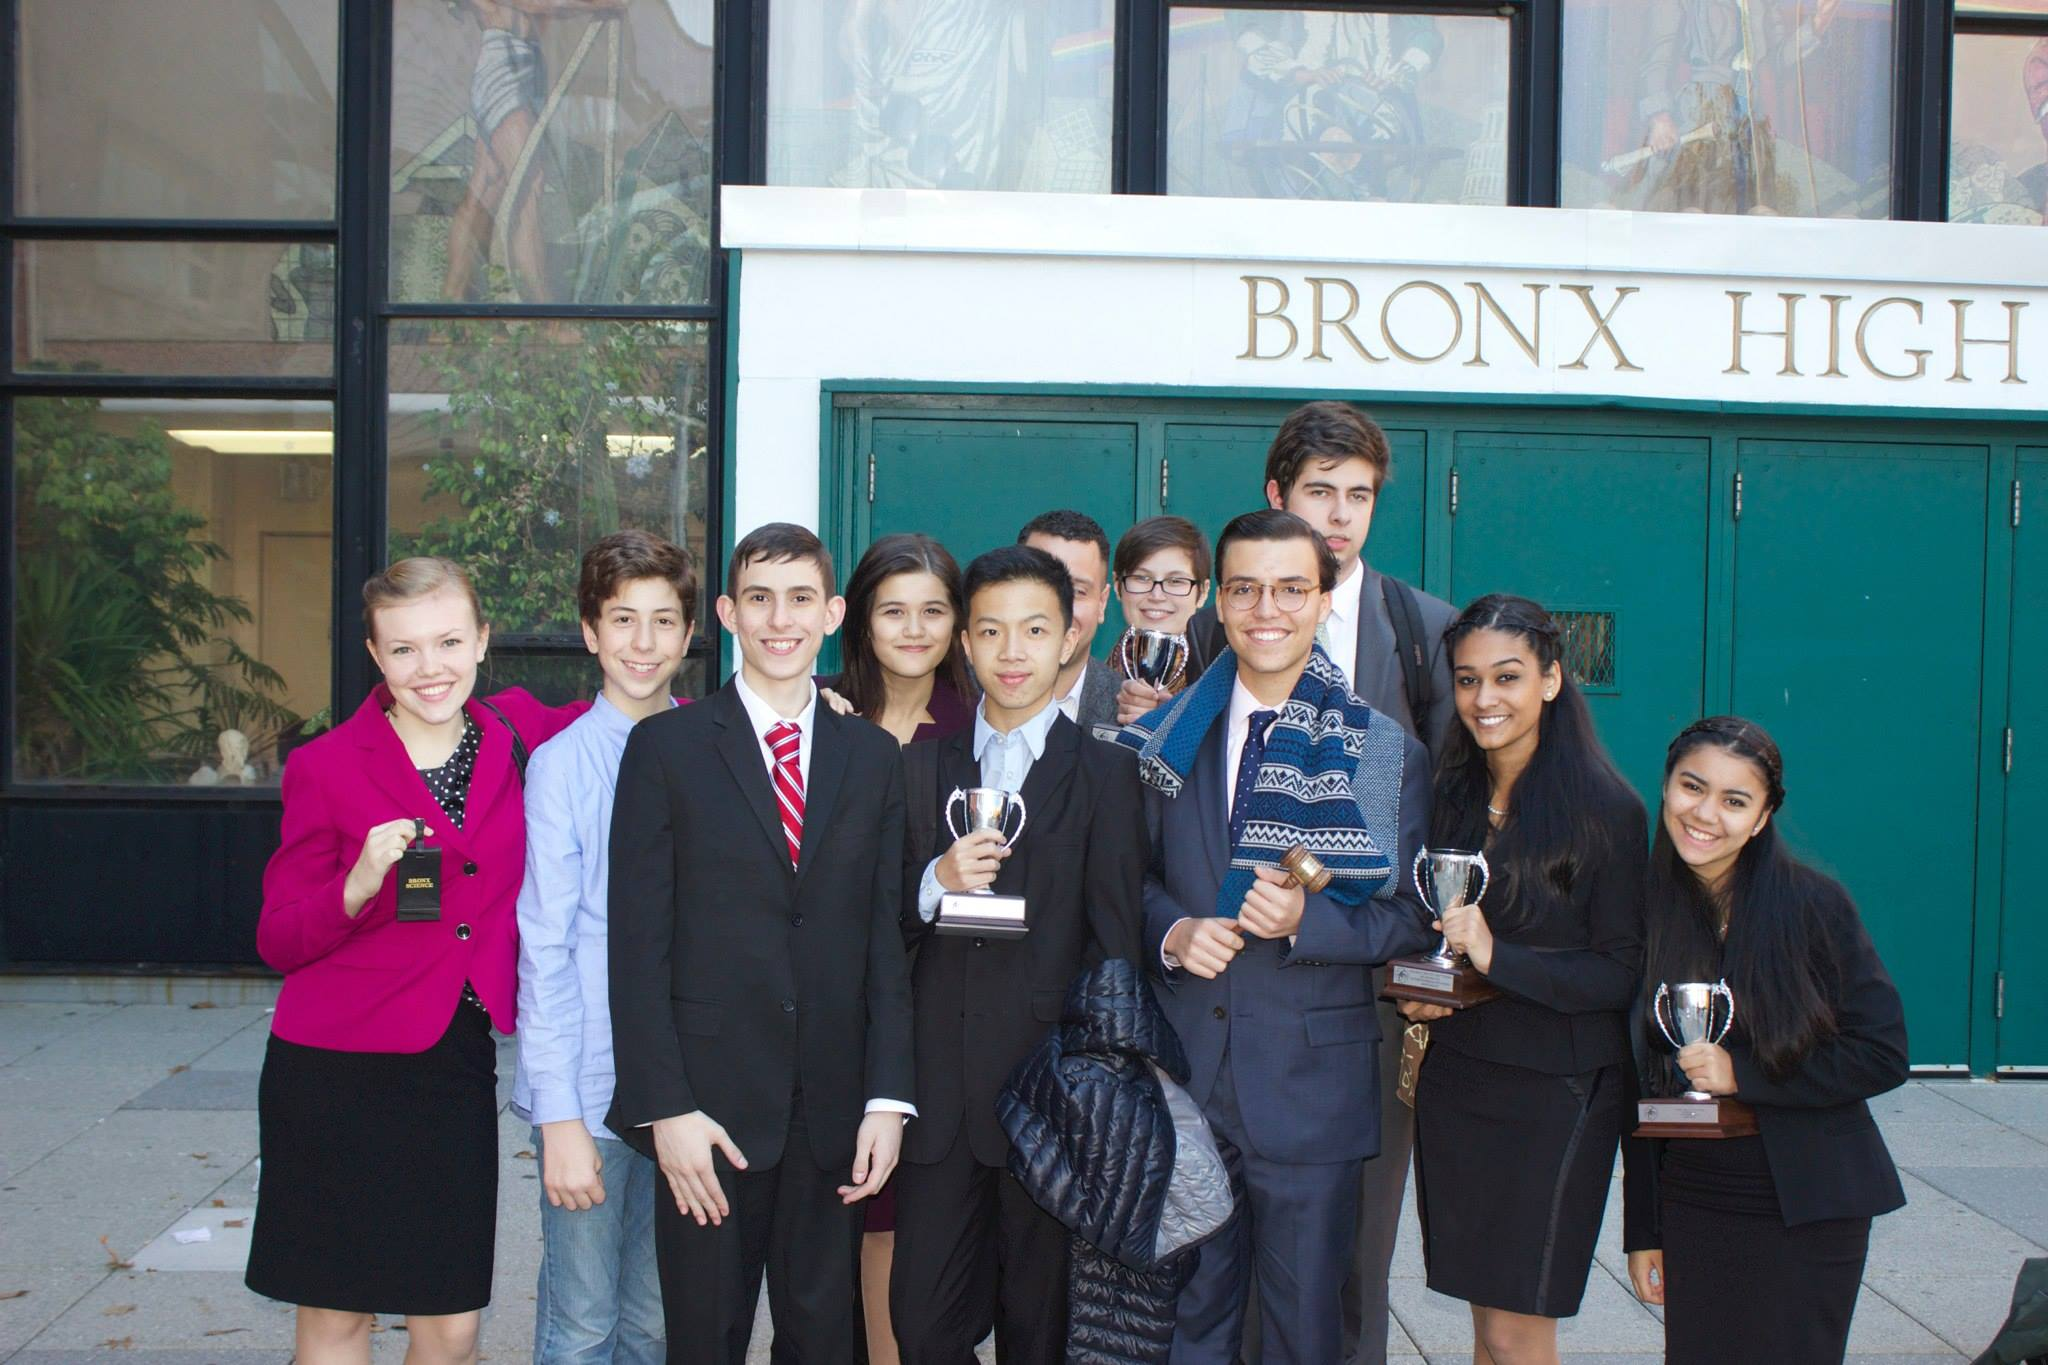 Speech and Congress at the New York City Invitational